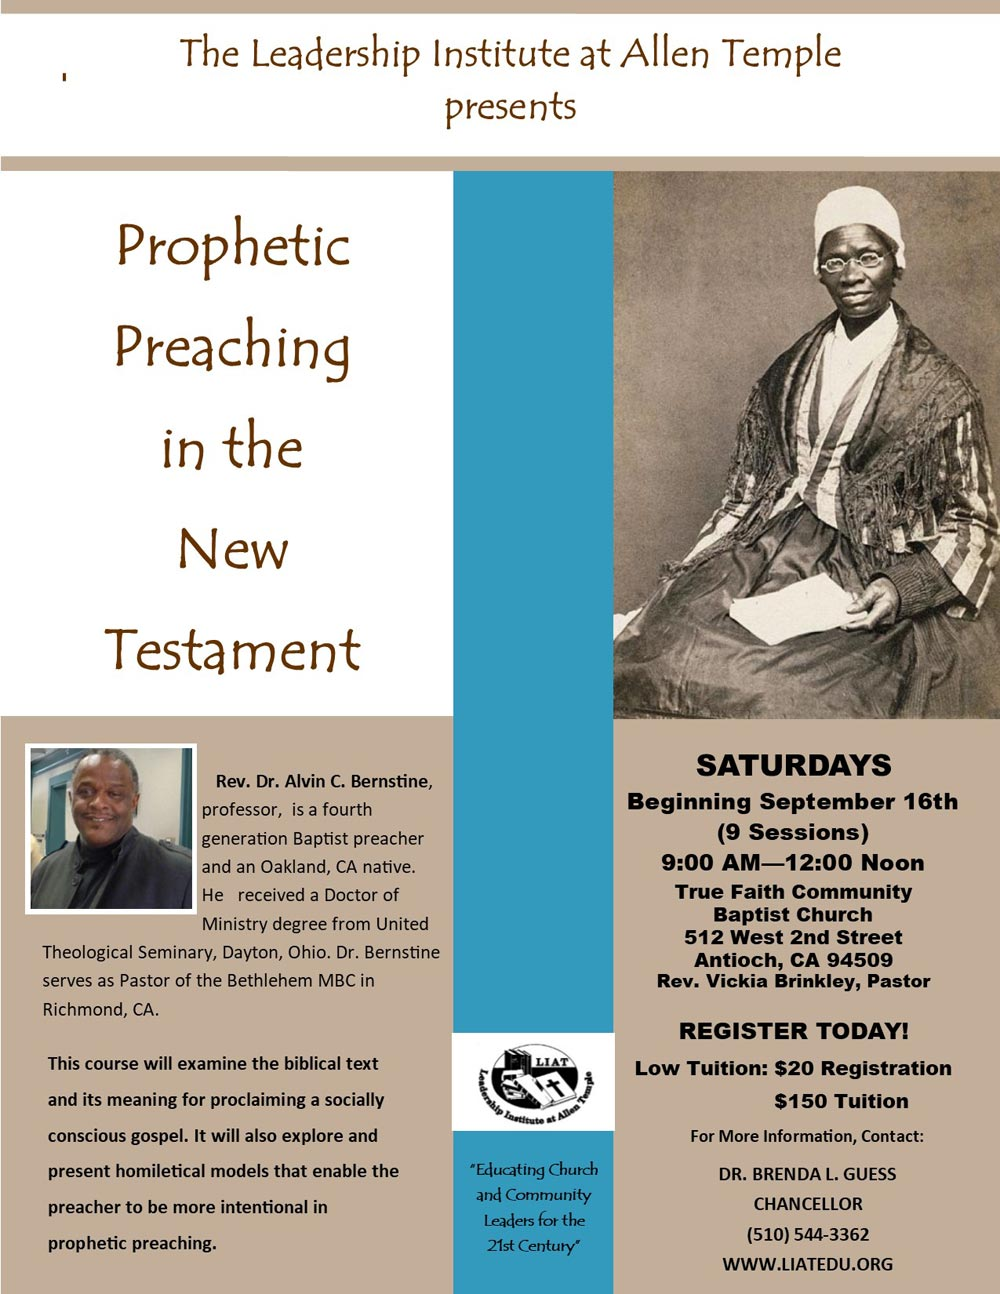 Prophetic Preaching in the New Testament